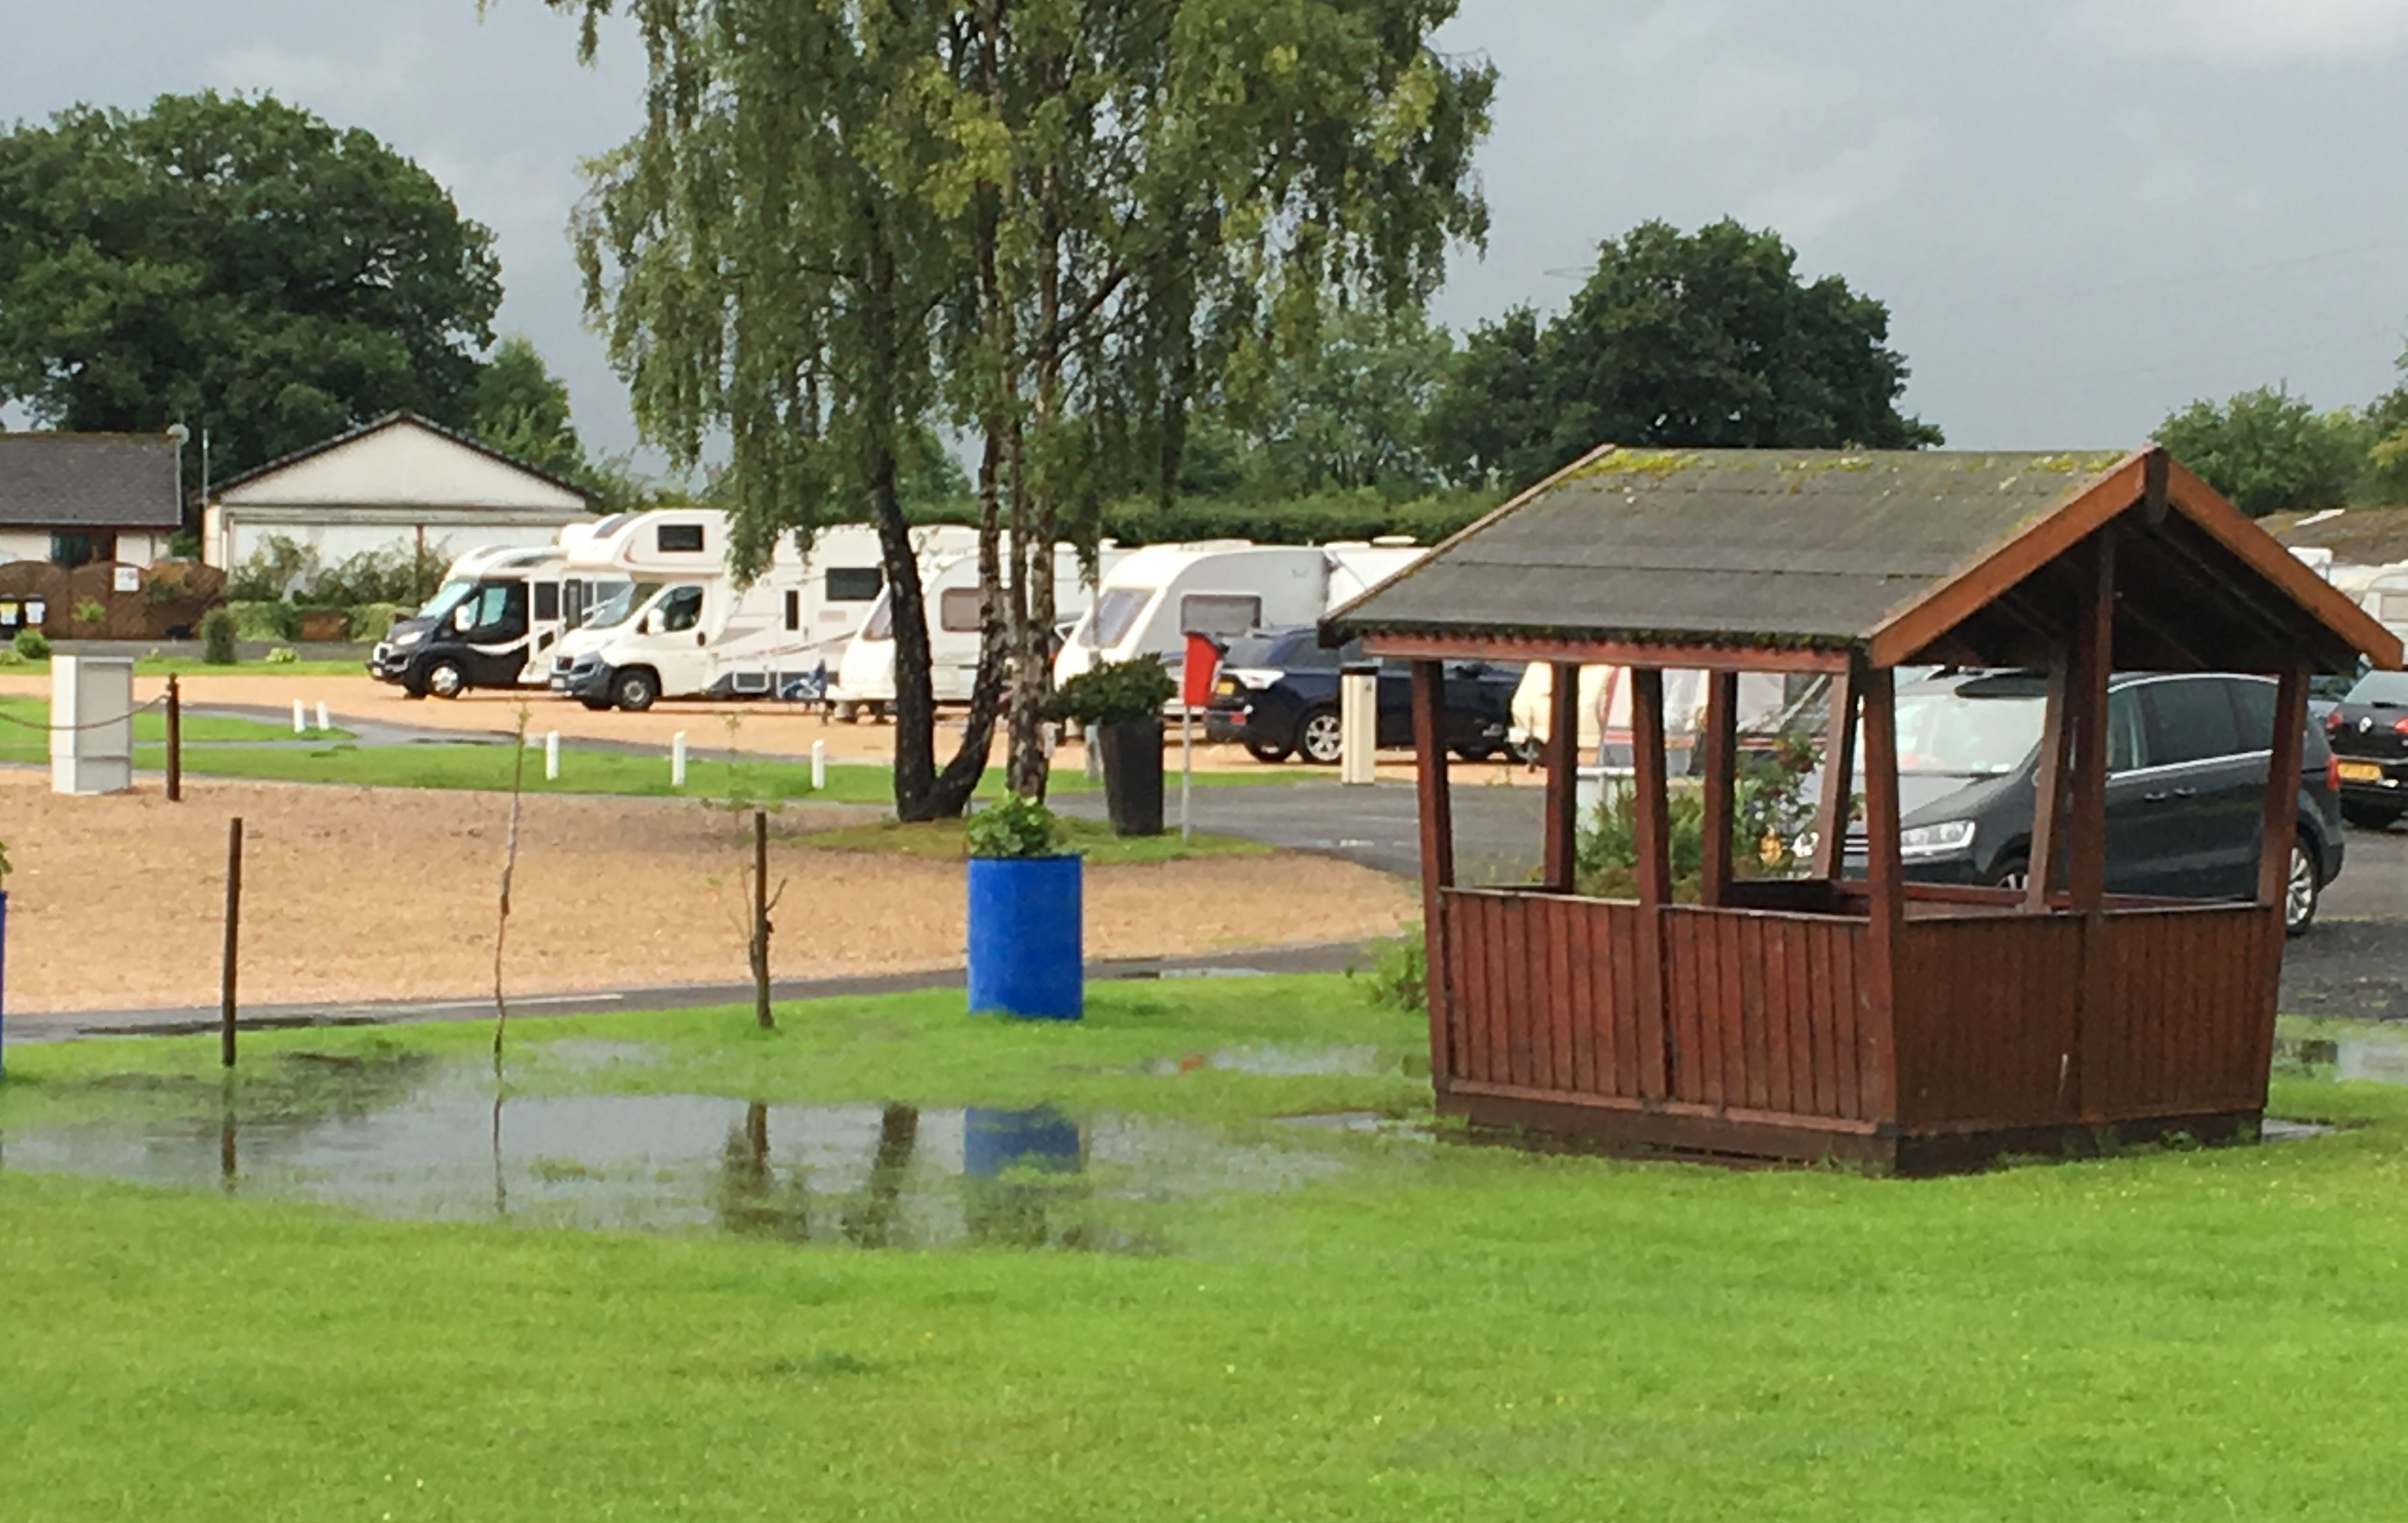 Campingwiese am Morgen in Stirling